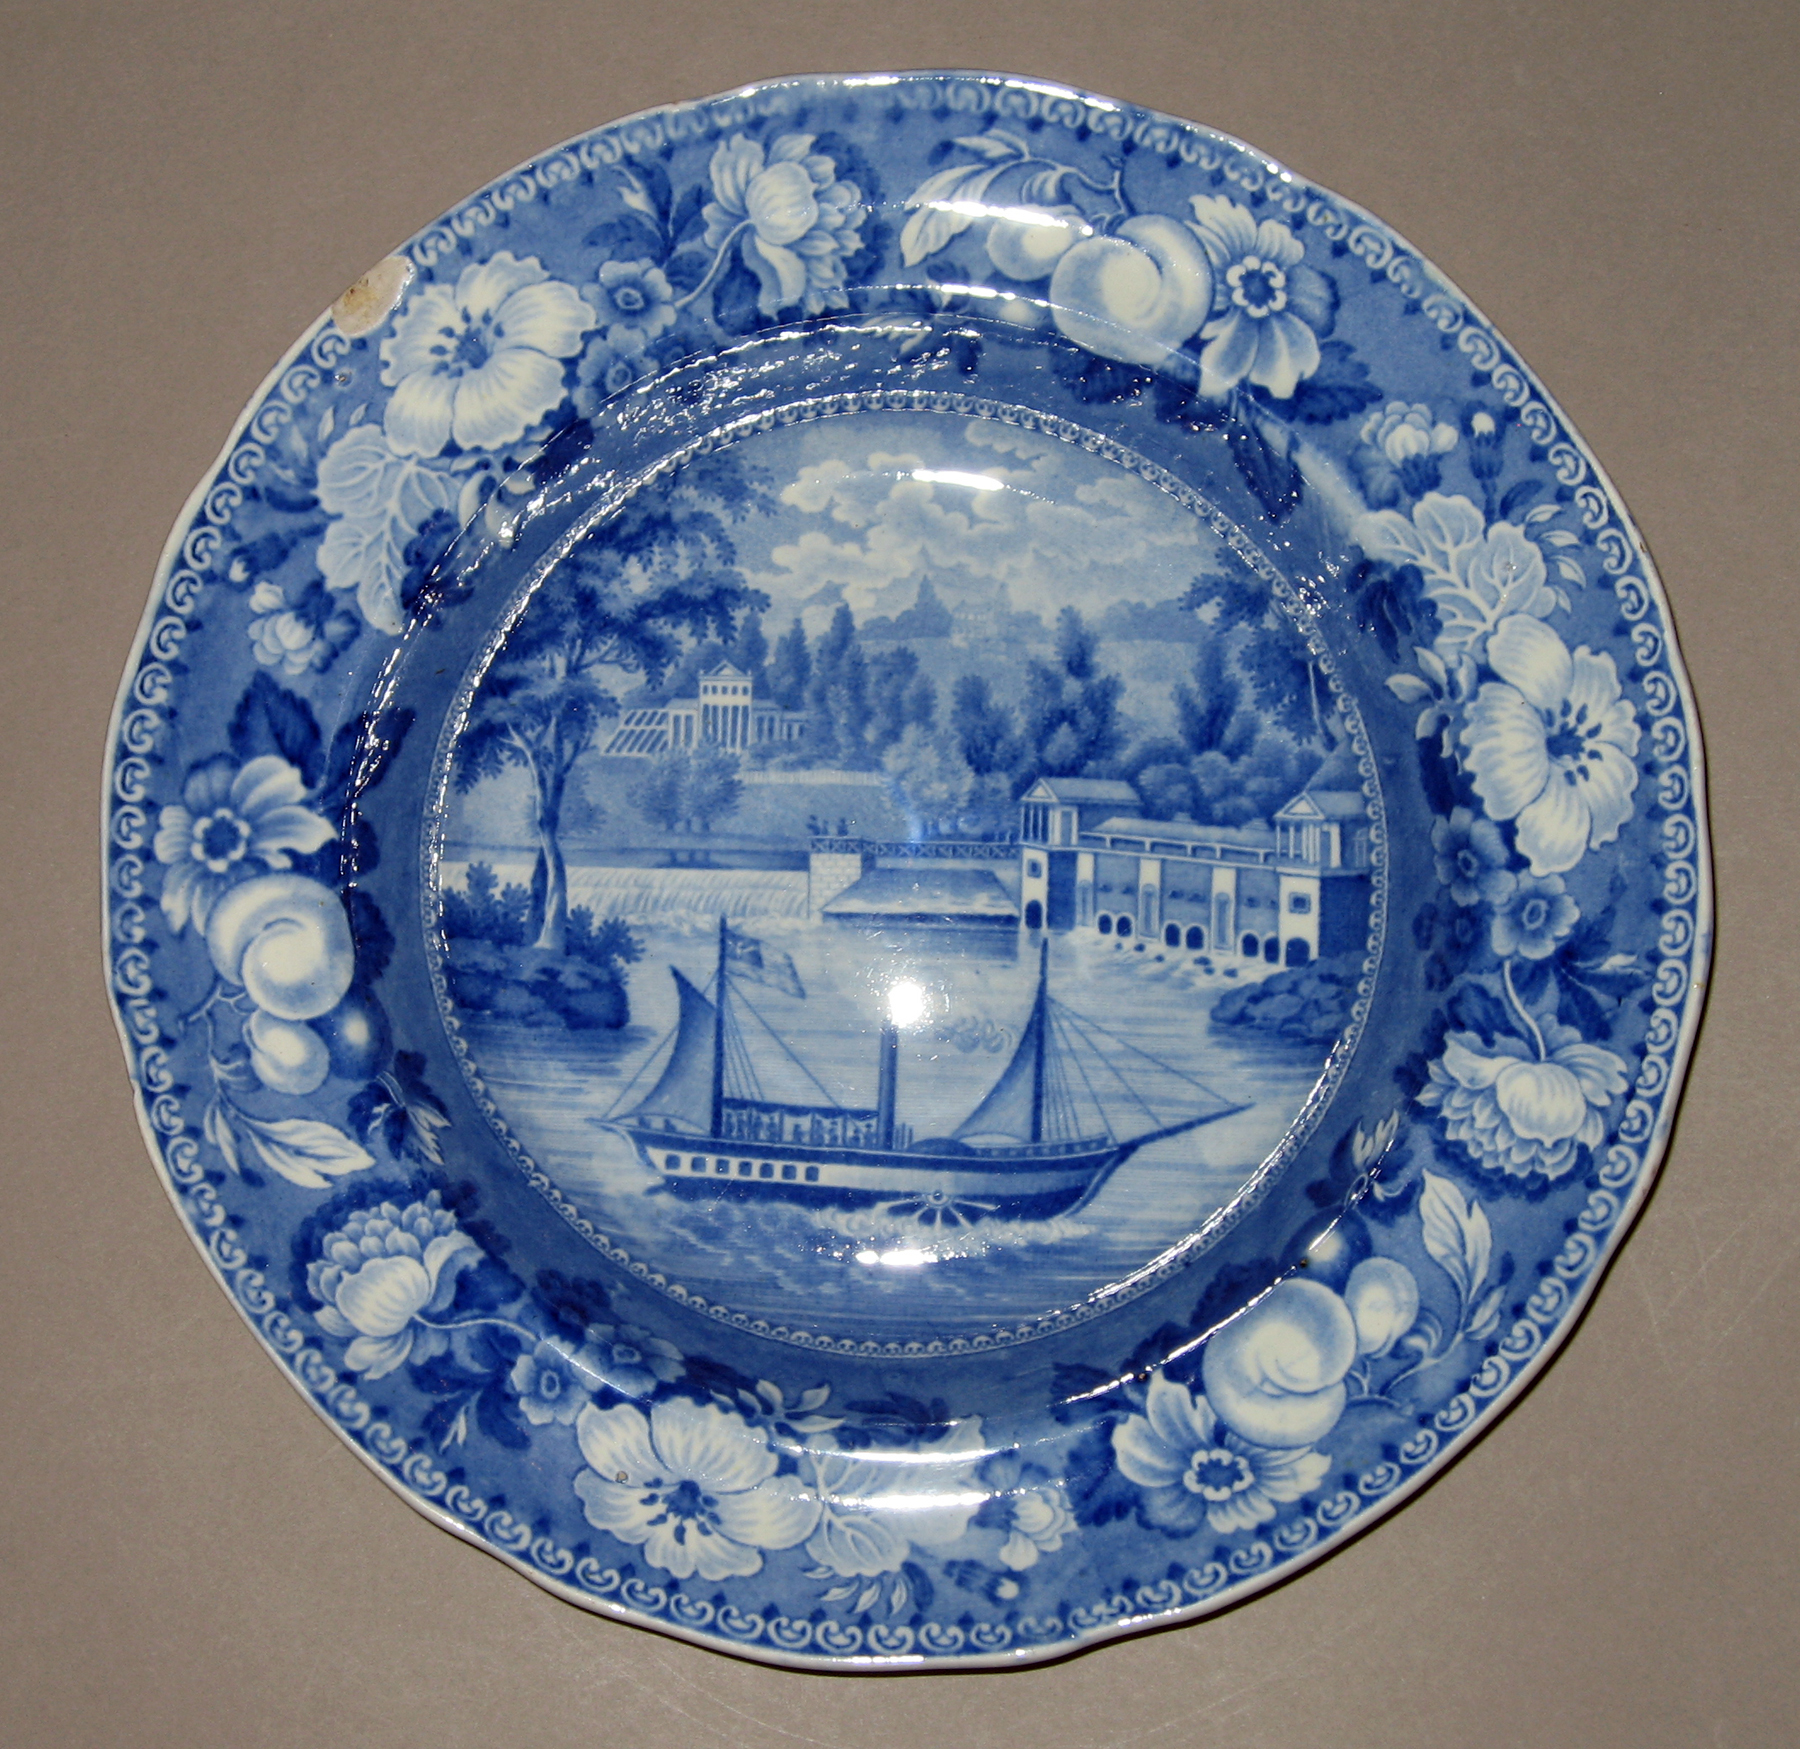 1958.2209.001 Plate